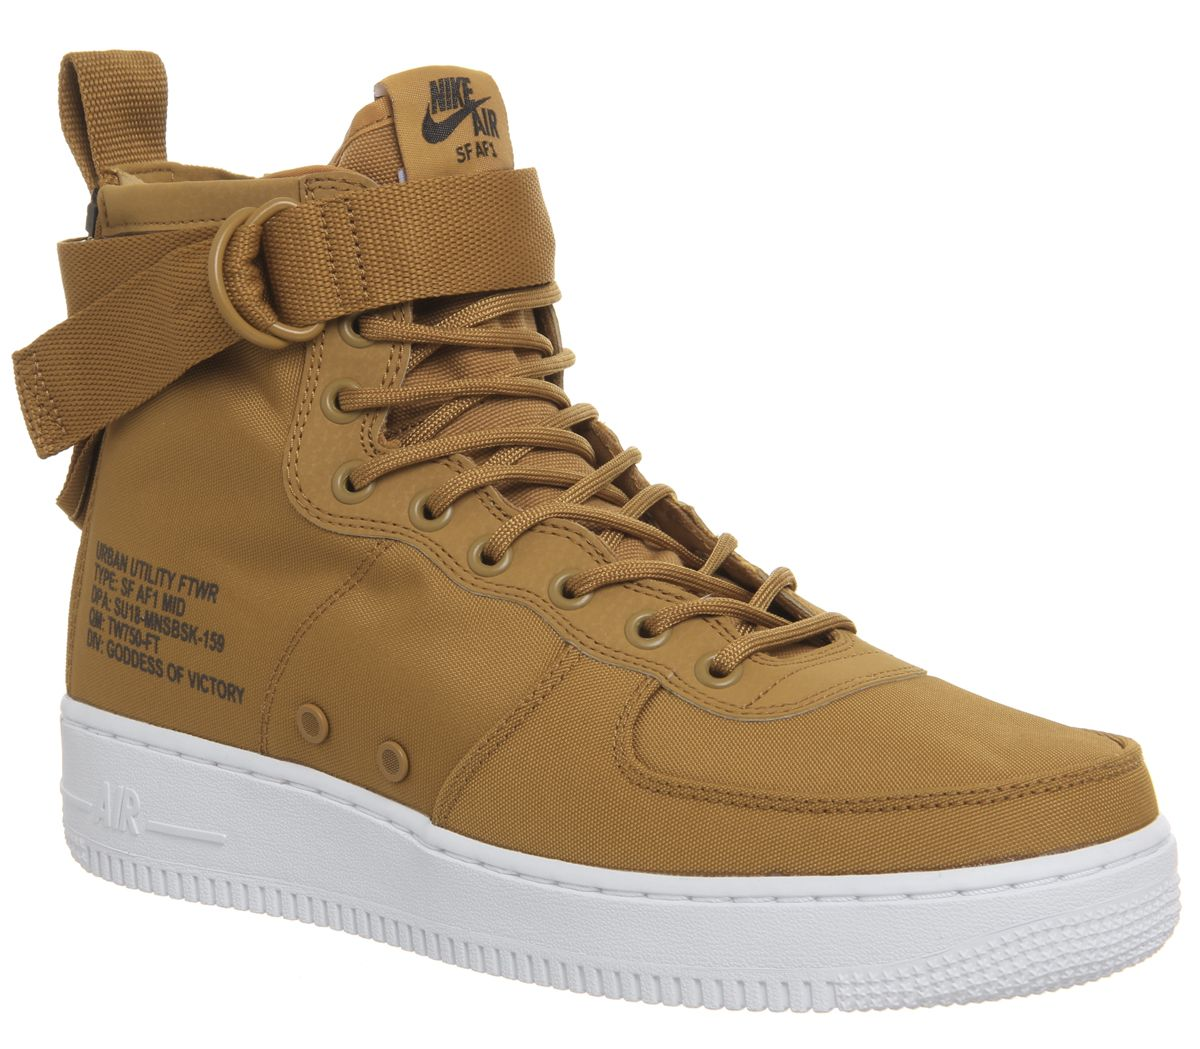 new concept 5e9b8 30140 Sf Af1 Mid 17 Trainers